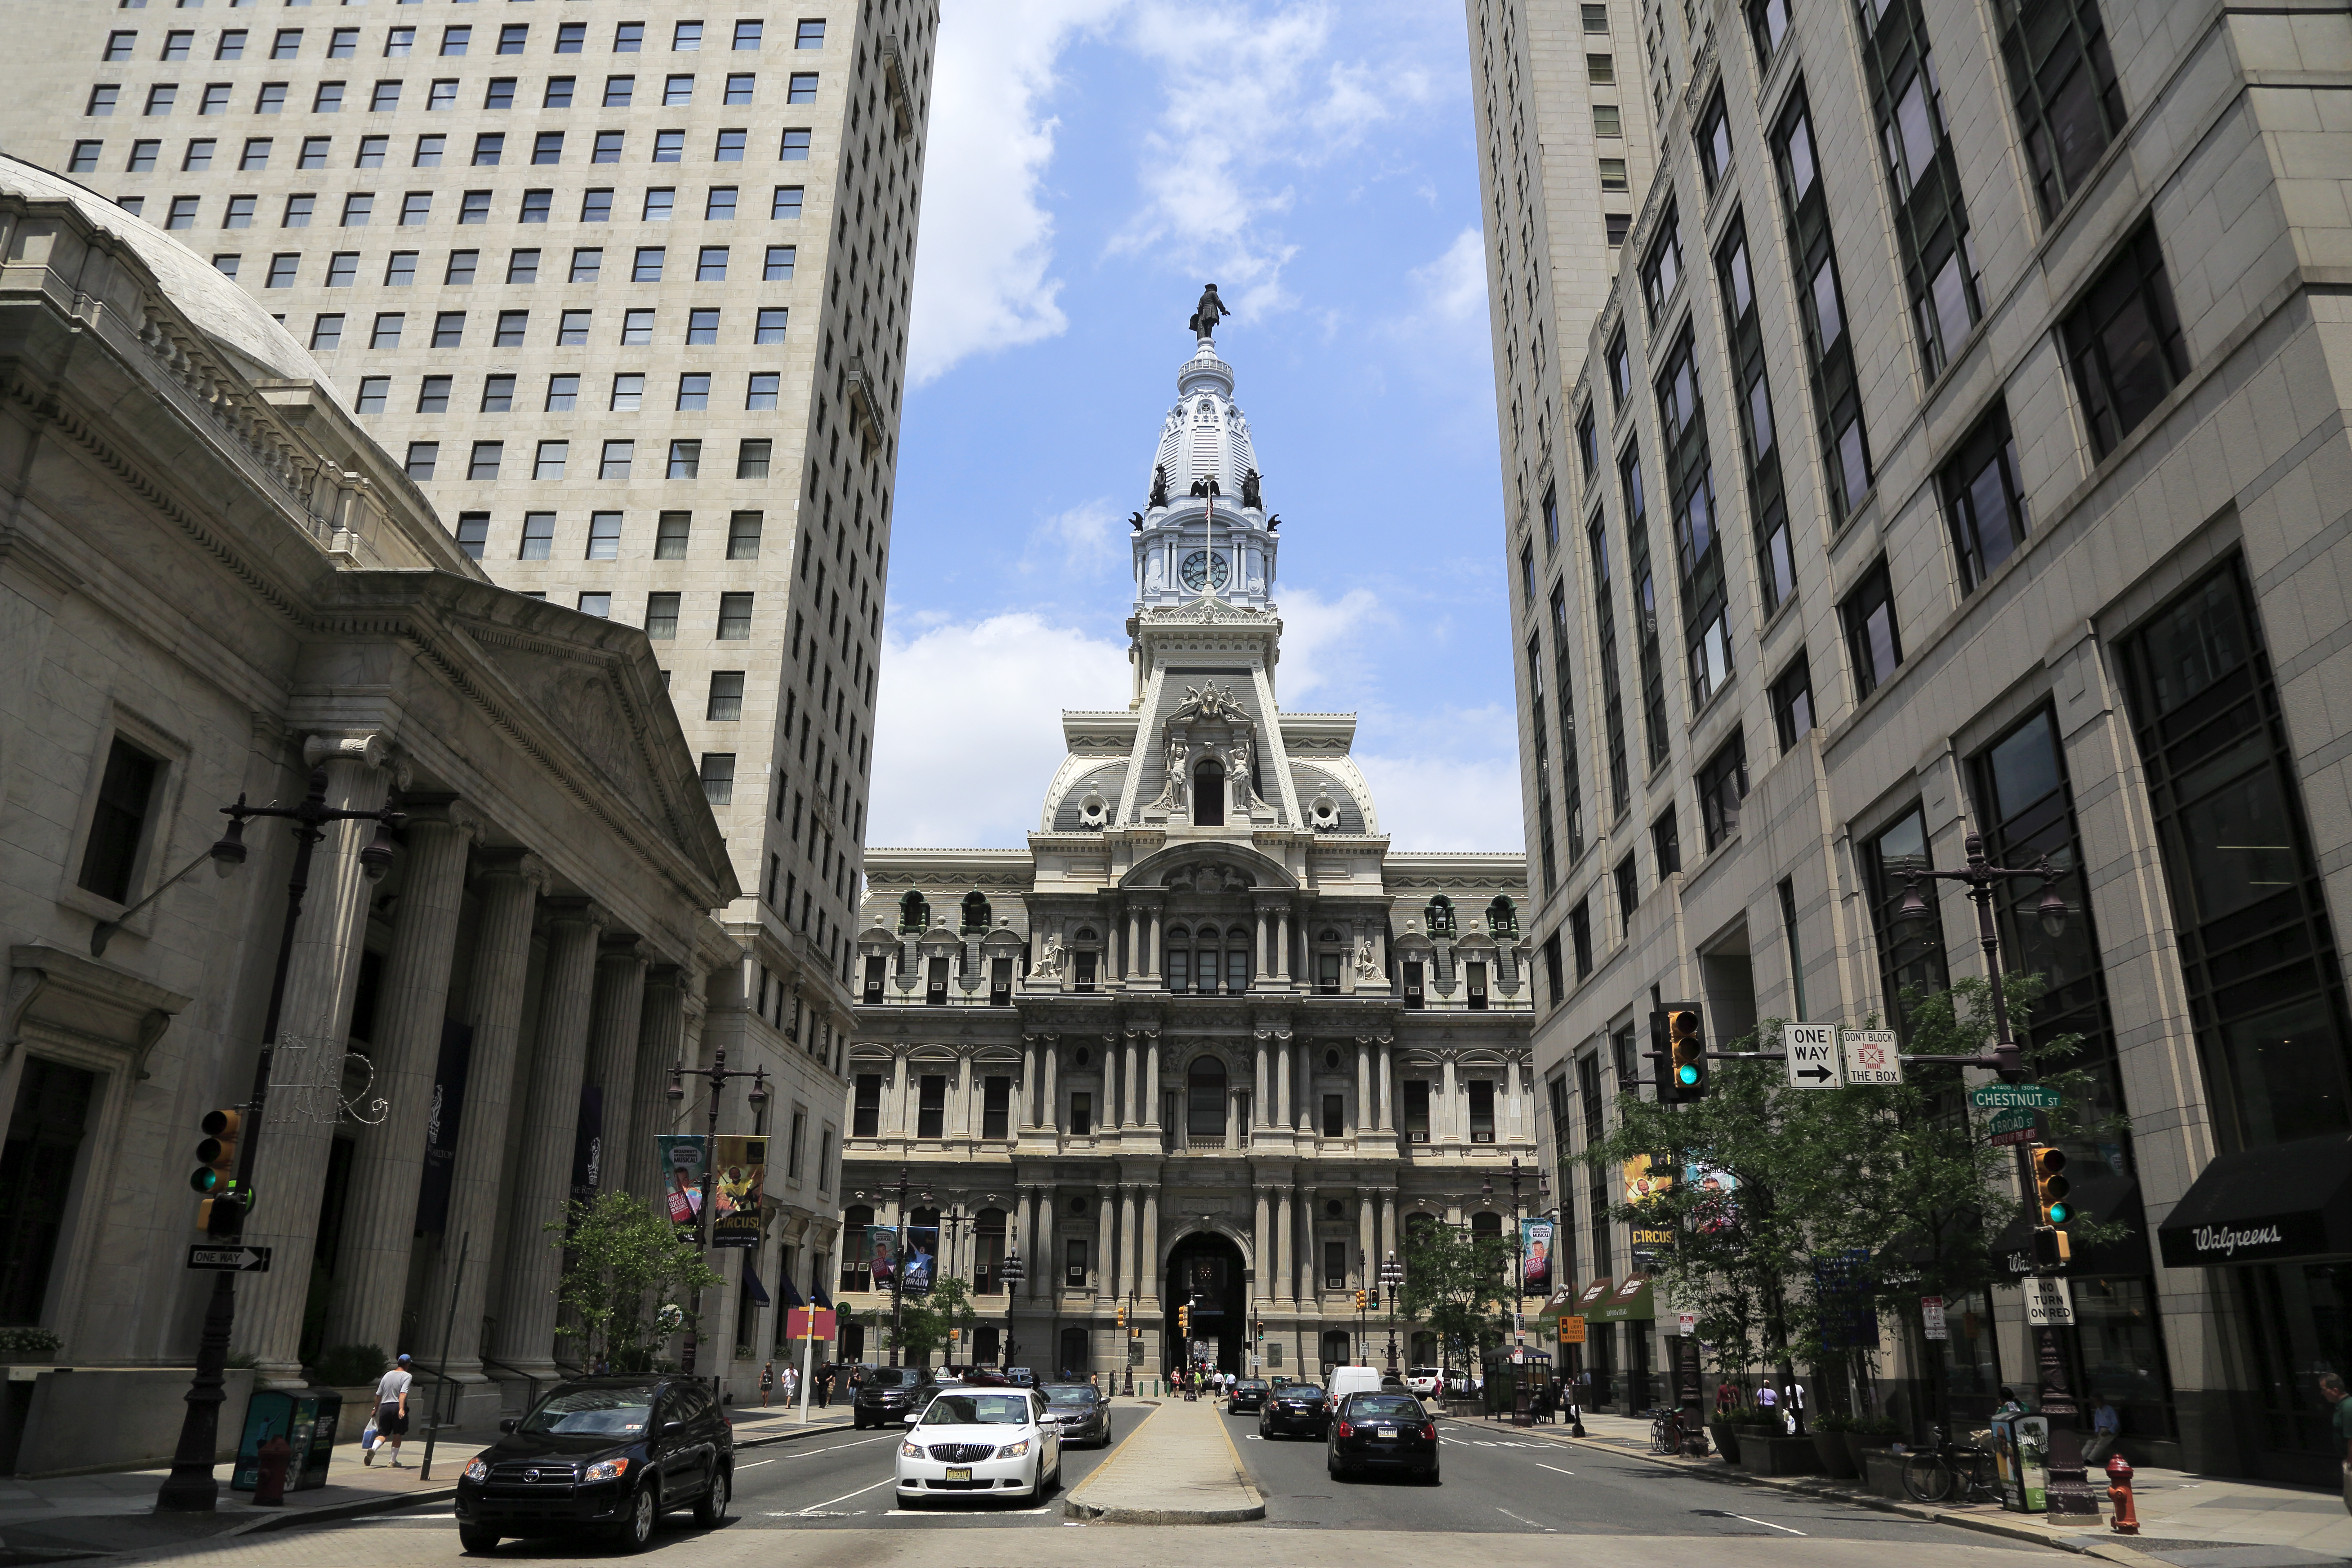 A view of the Philadelphia City Hall from Market Street in downtown Philadelphia.